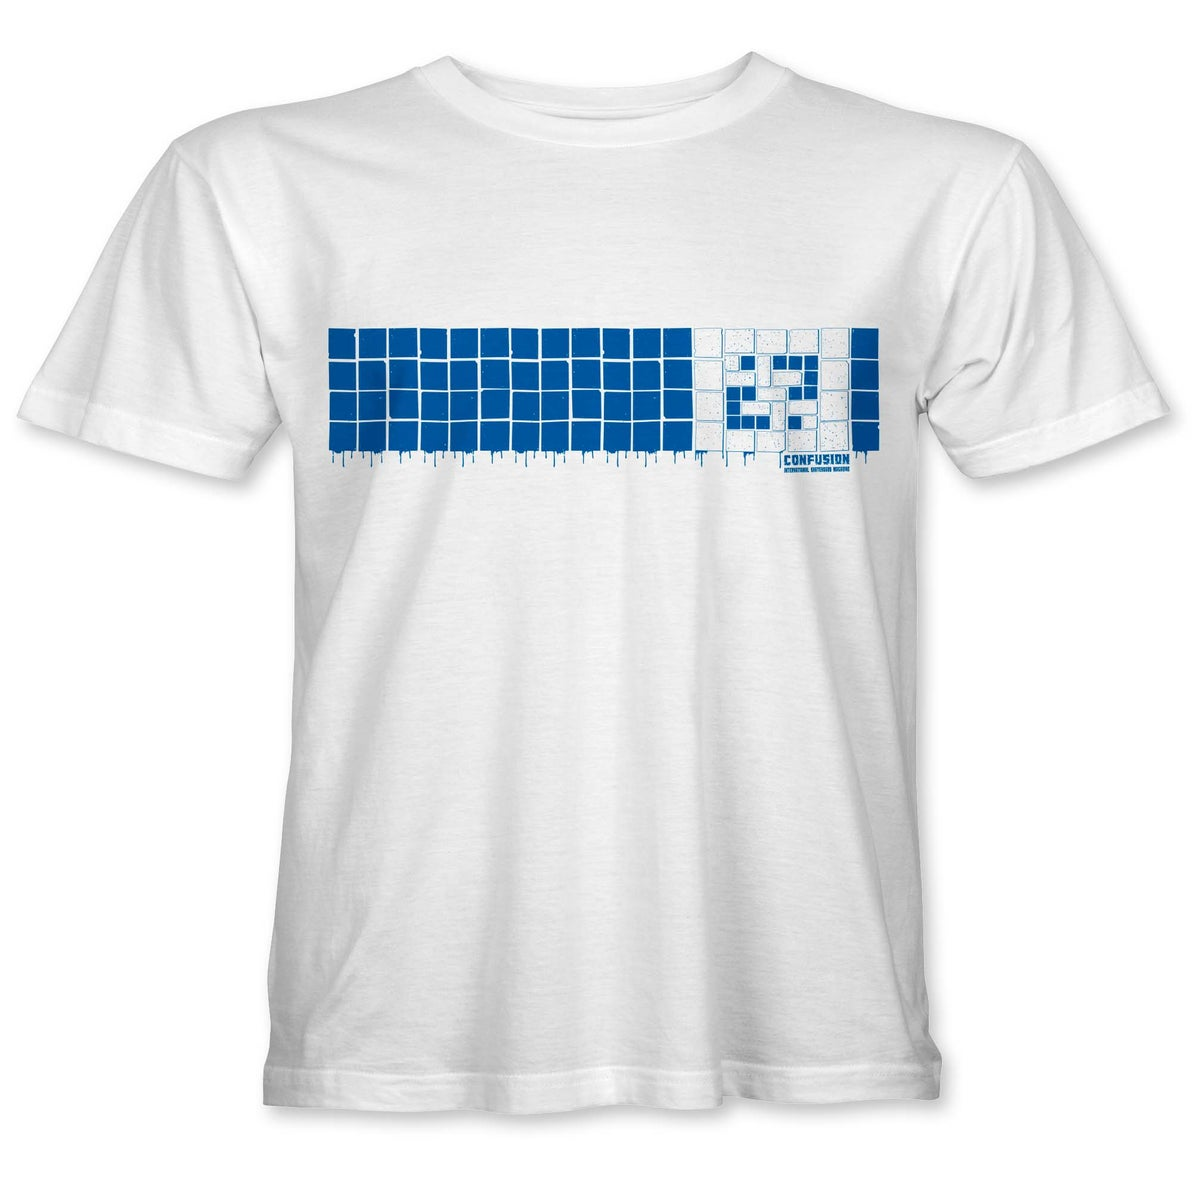 """Image of Confusion - """"Tiles"""" t-shirt  [white tee / blue ink]"""